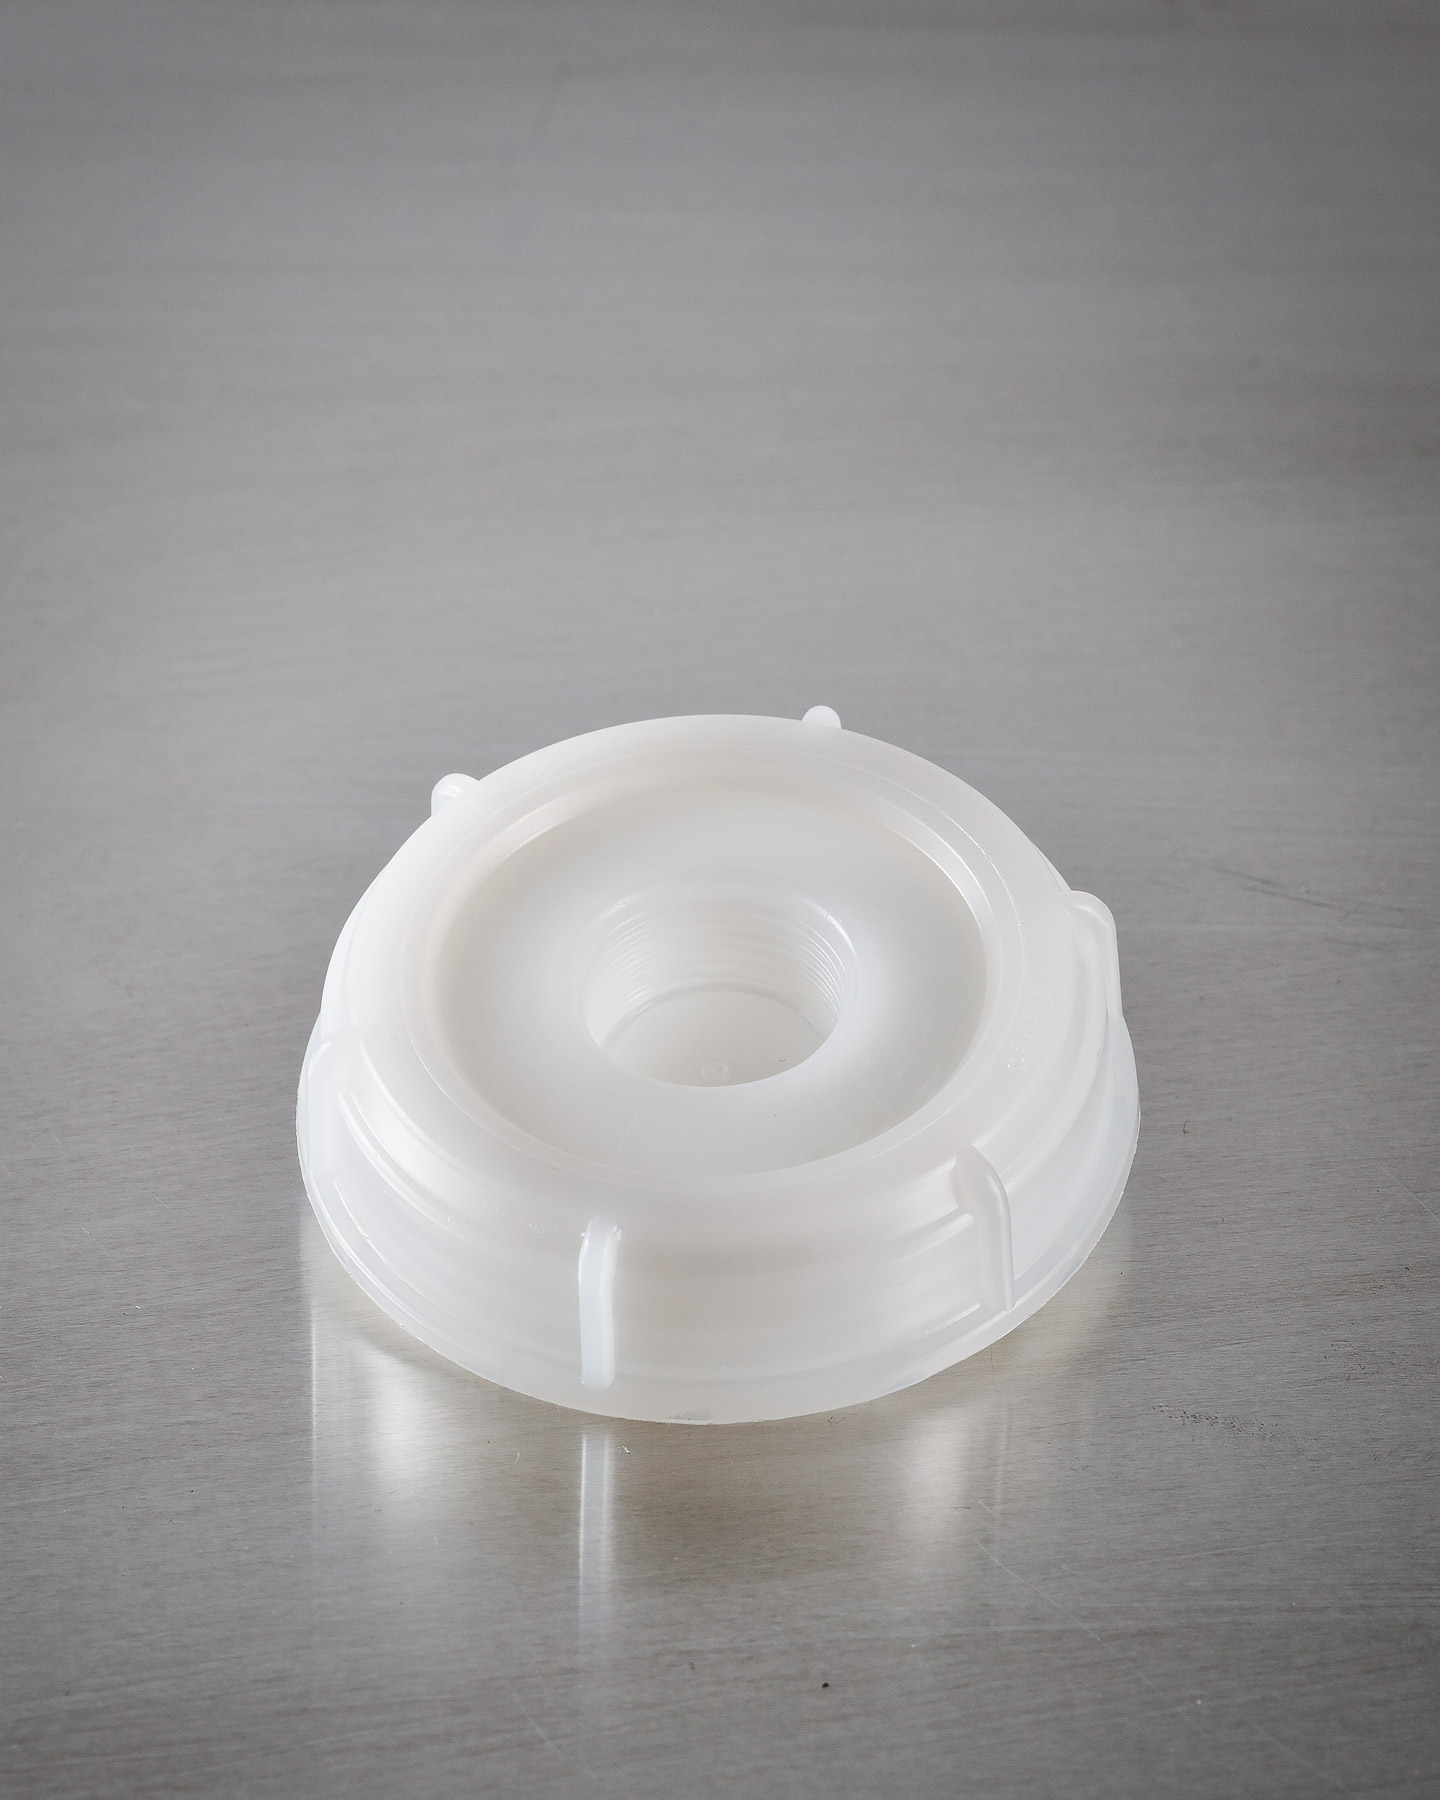 Extra Seal Cap for Organic Alcohol Containers